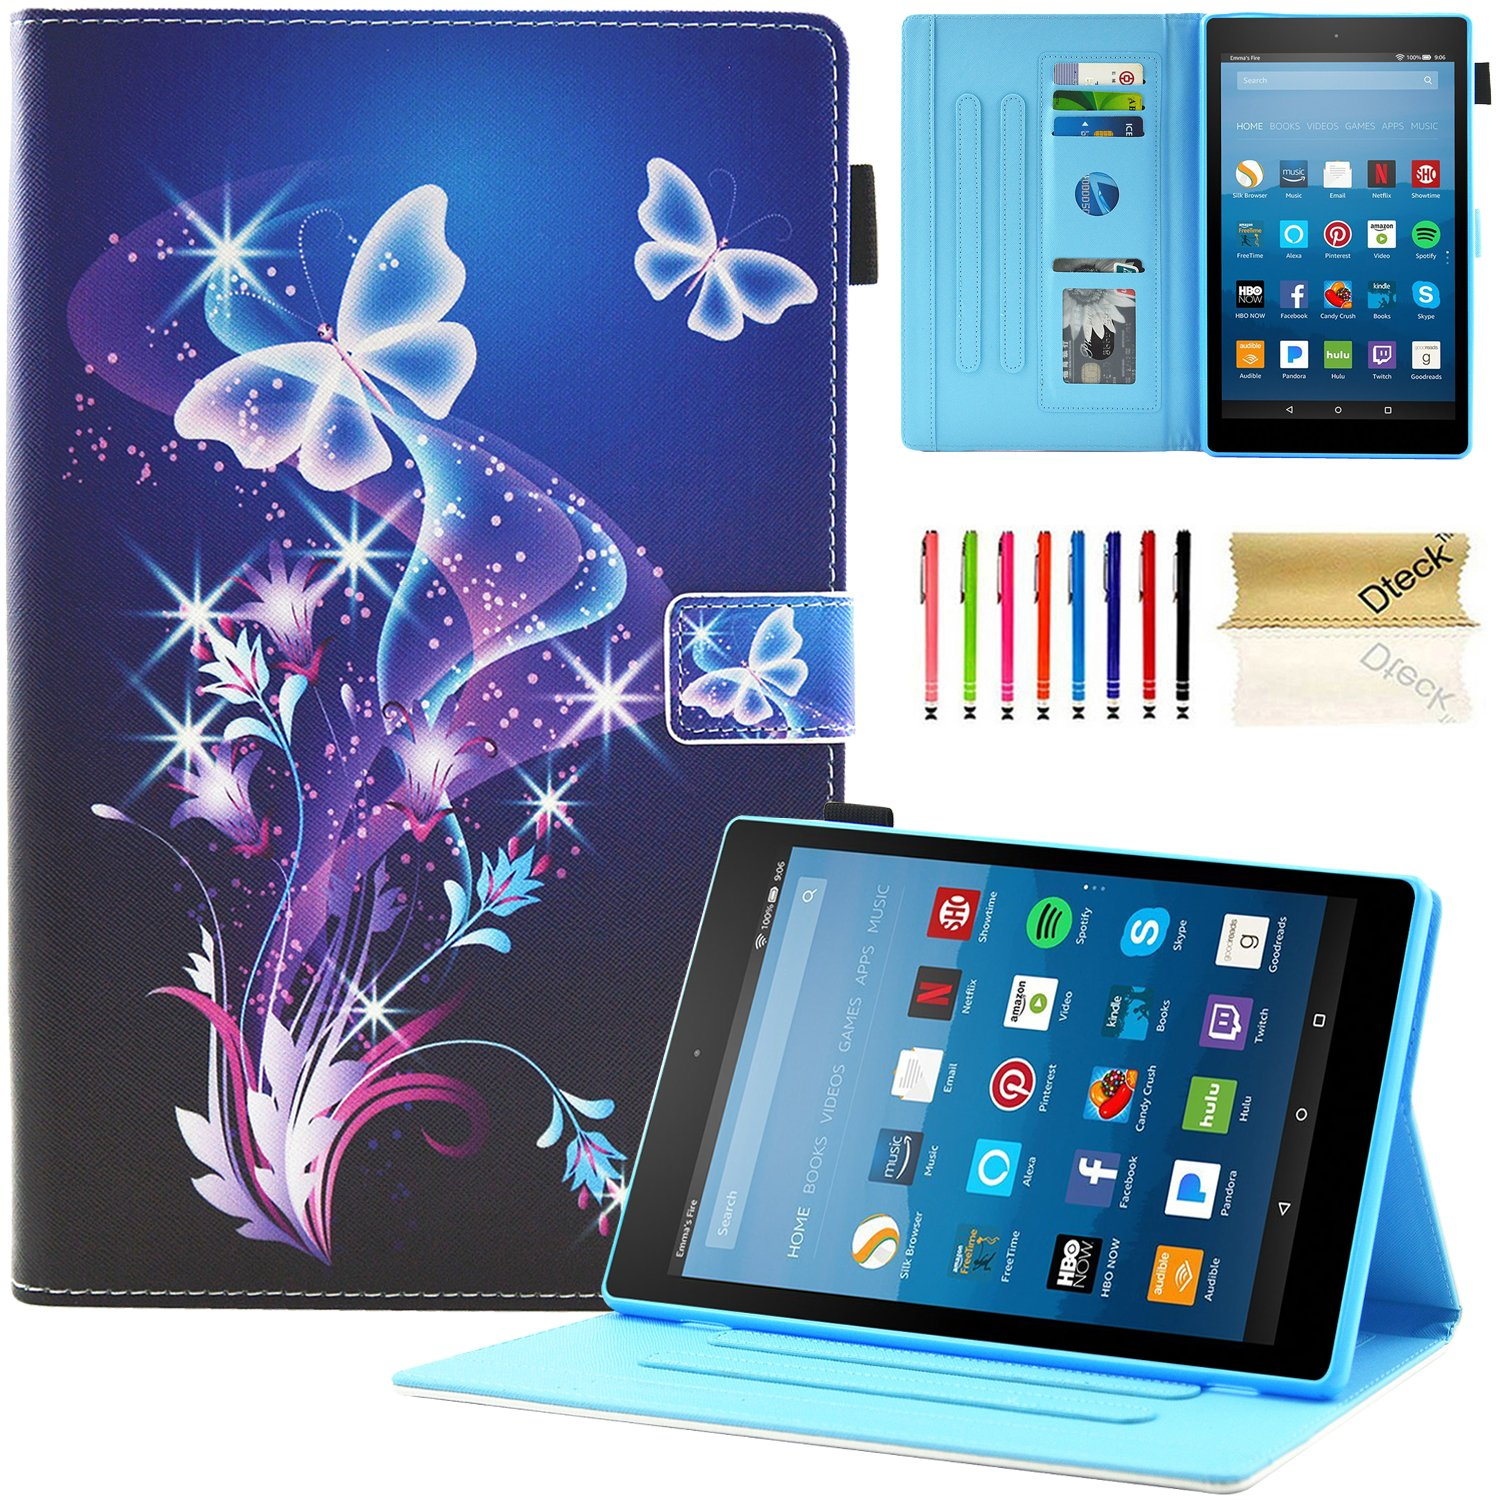 Dteck All-New Fire HD 10 Case - Slim Fit PU Leather Multi-Angle Stand Cover with Photo Frame Auto Wake/Sleep for Amazon Kindle Fire HD 10.1'' Tablet (6th/7th Gen, 2017/2016 Release), Fancy Butterfly